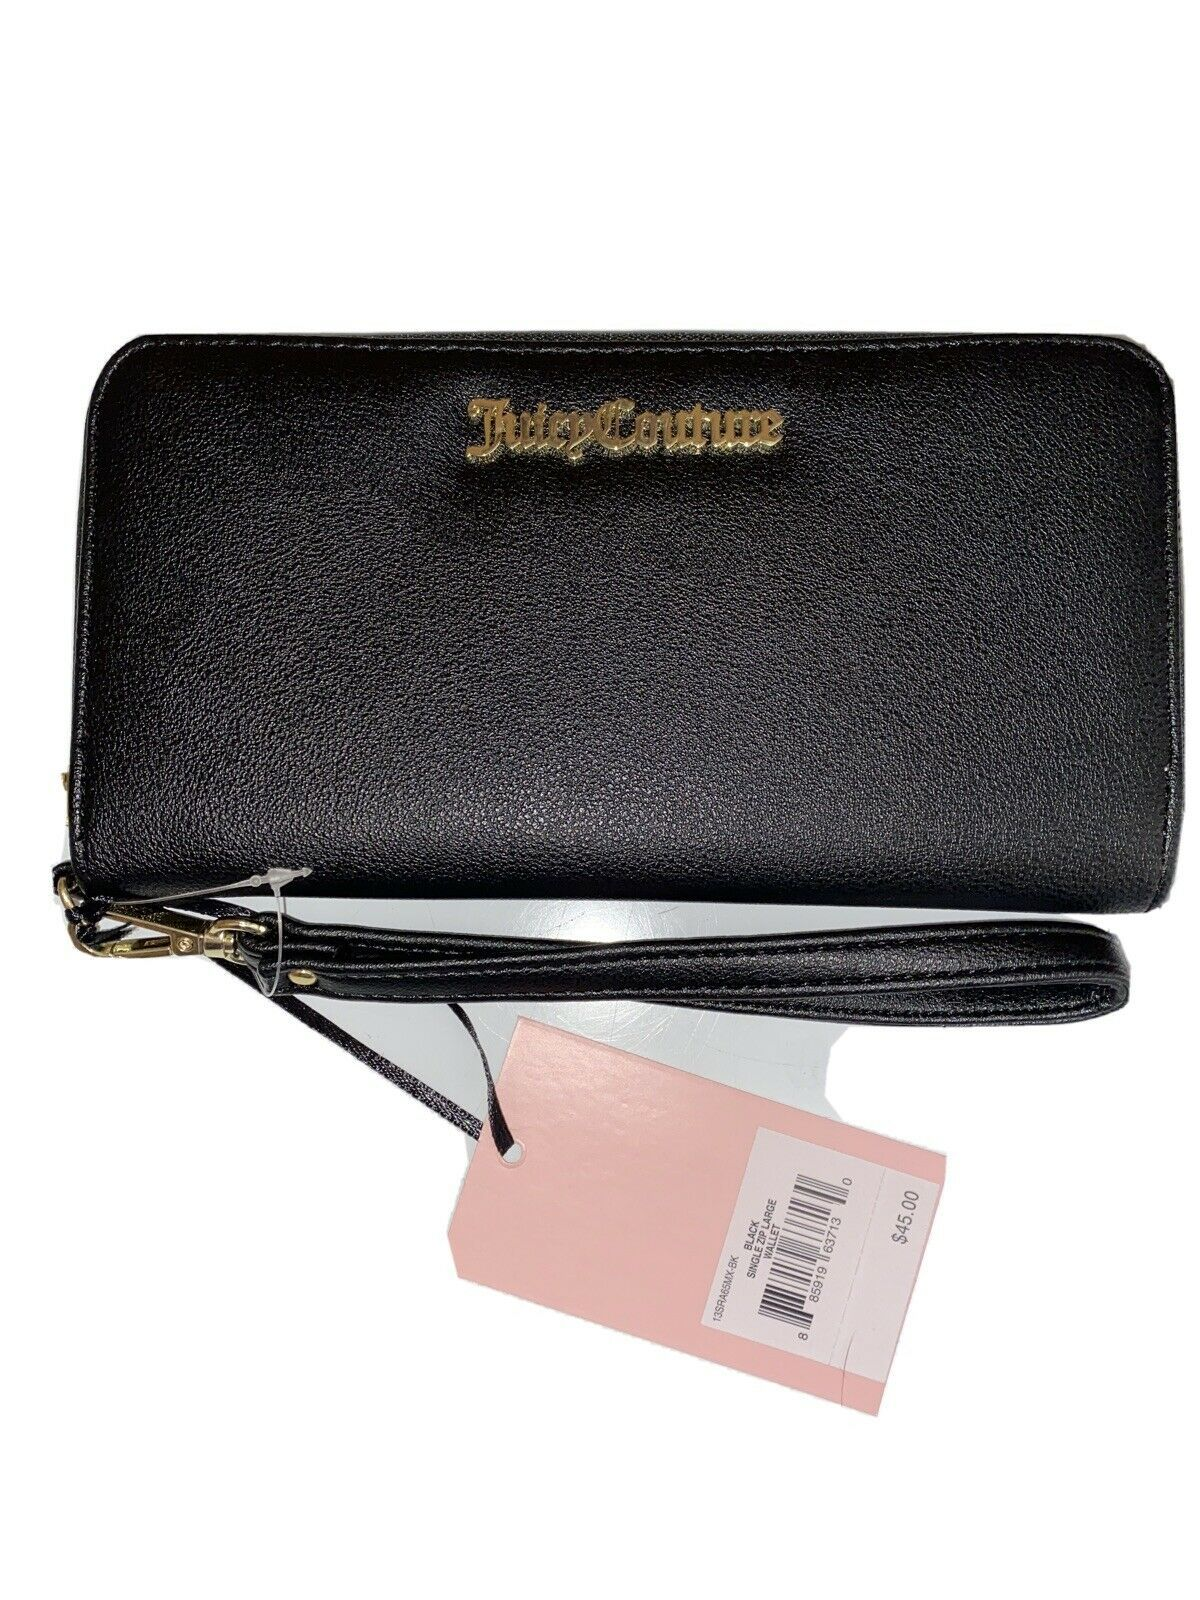 Primary image for JUICY COUTURE Wallet- Wristlet Zip Around Black Gold Brand Name Plate Large New